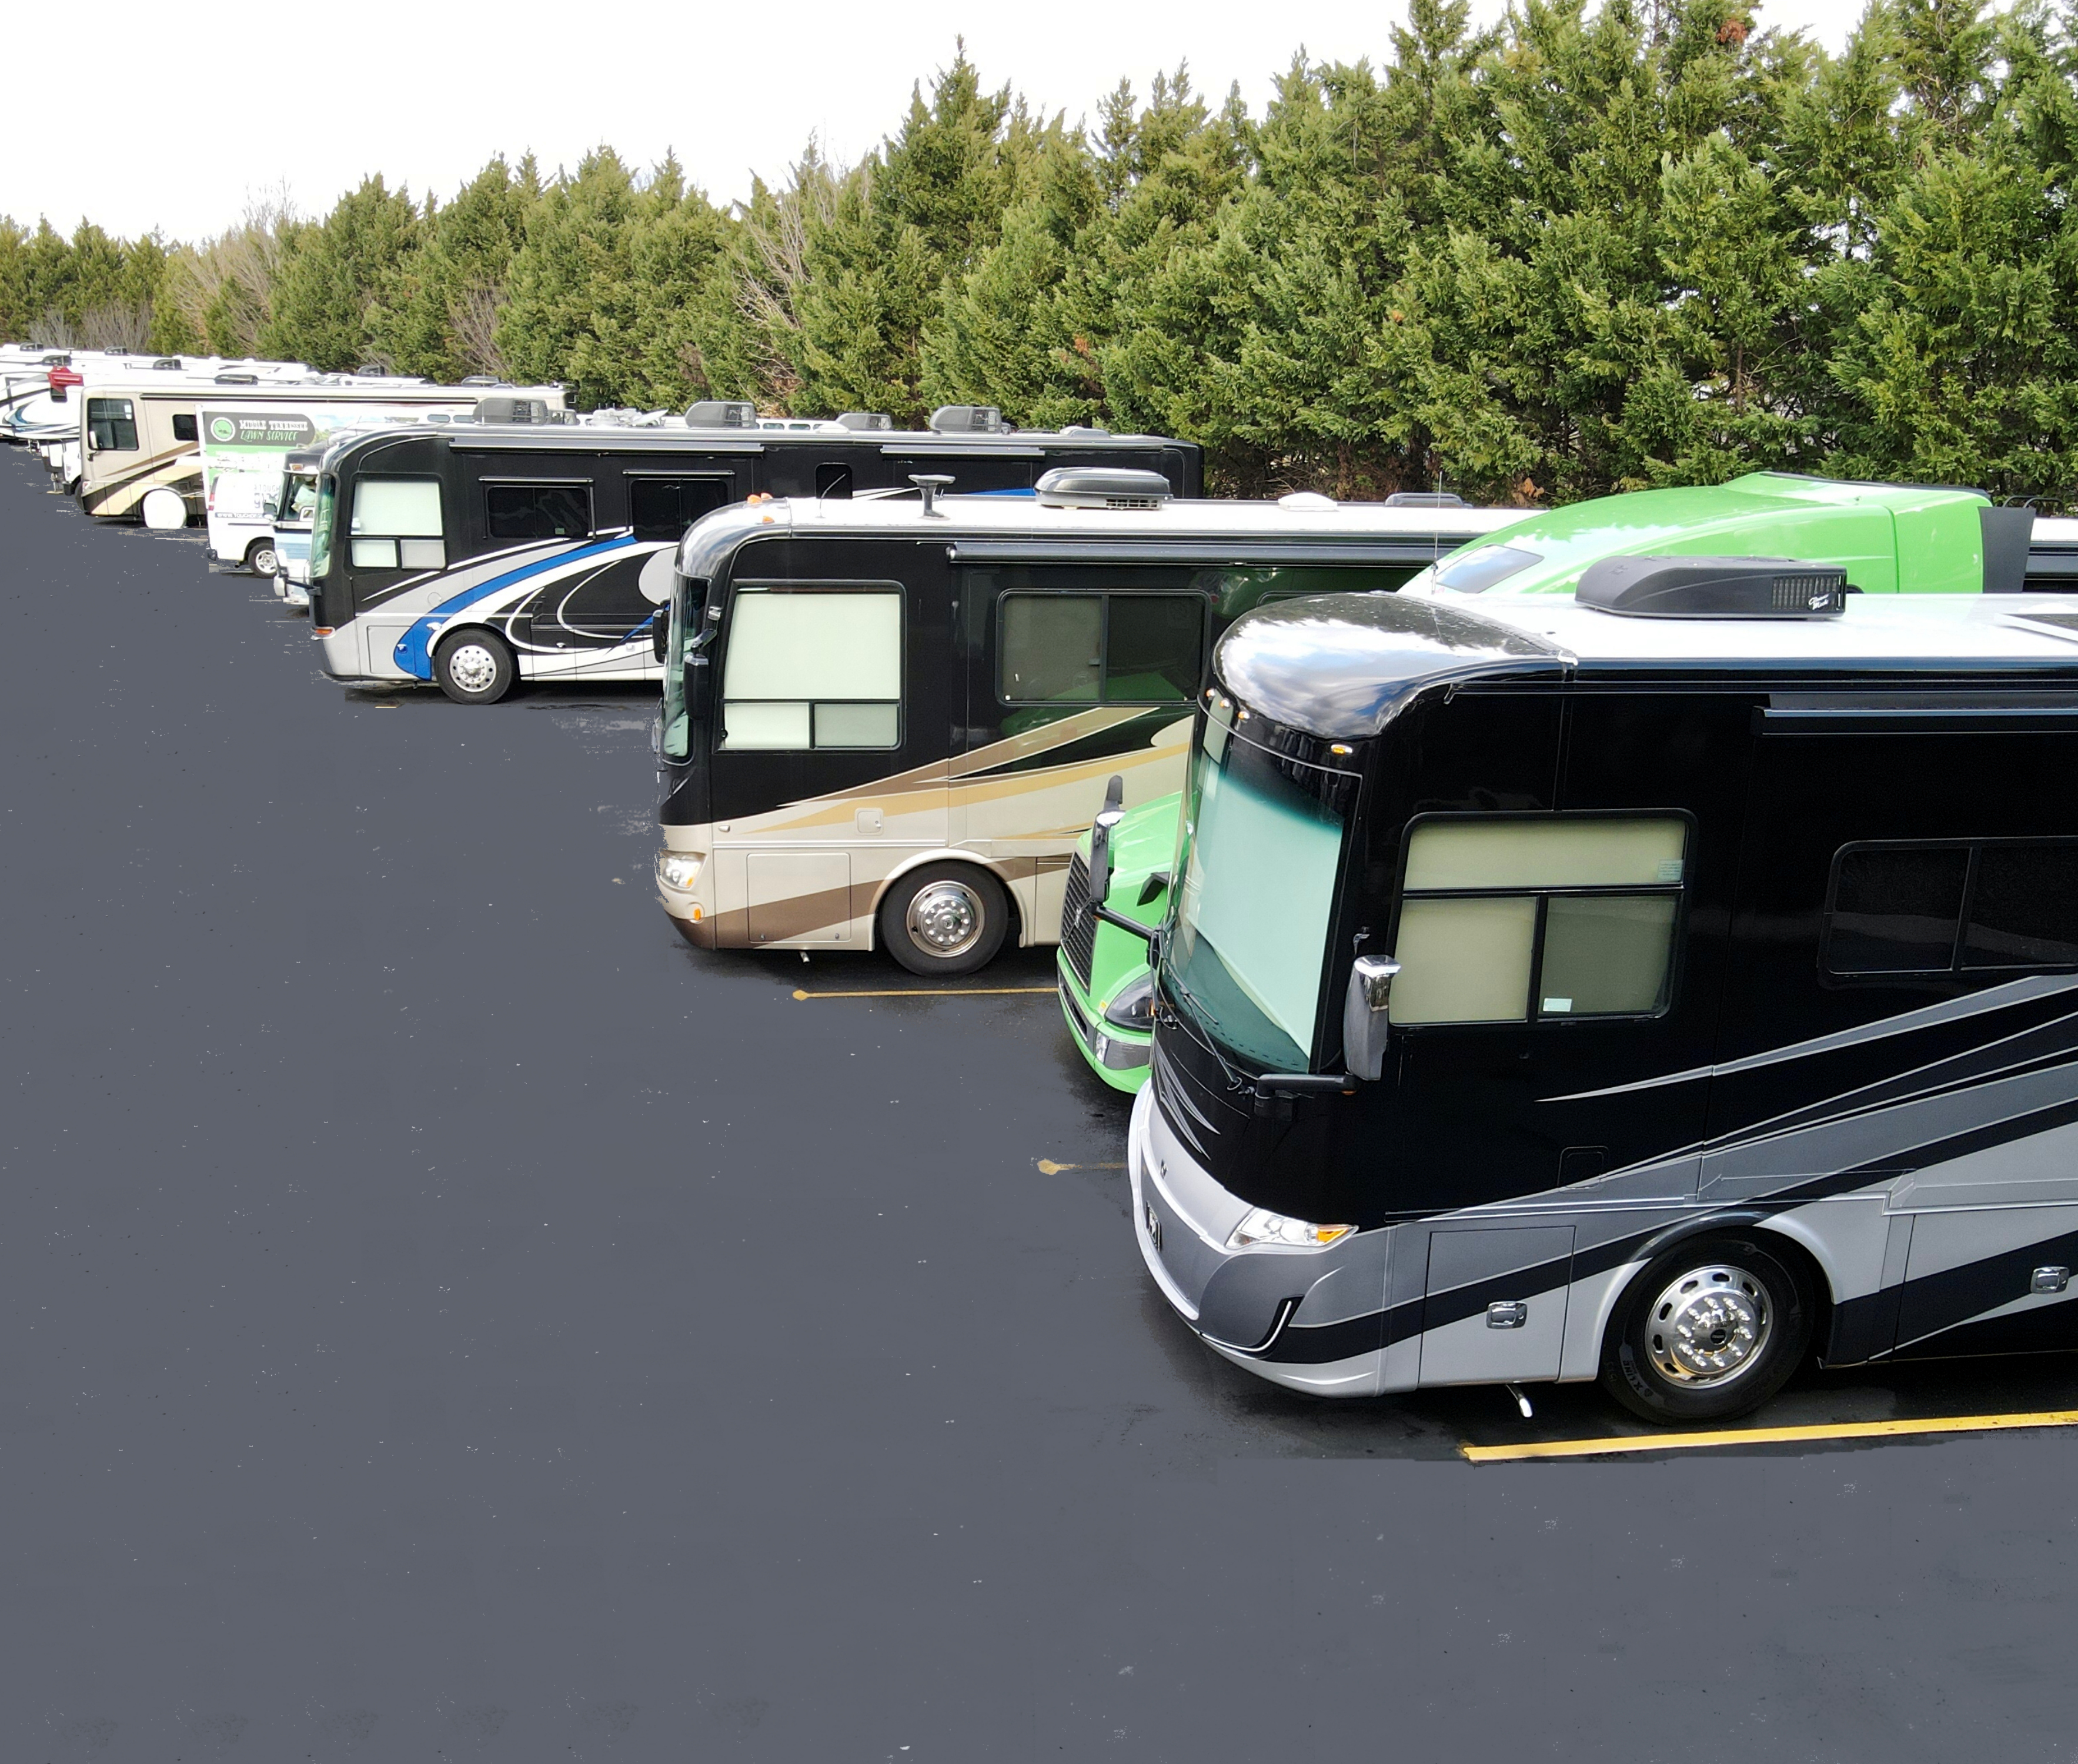 RV Parking in Tennessee